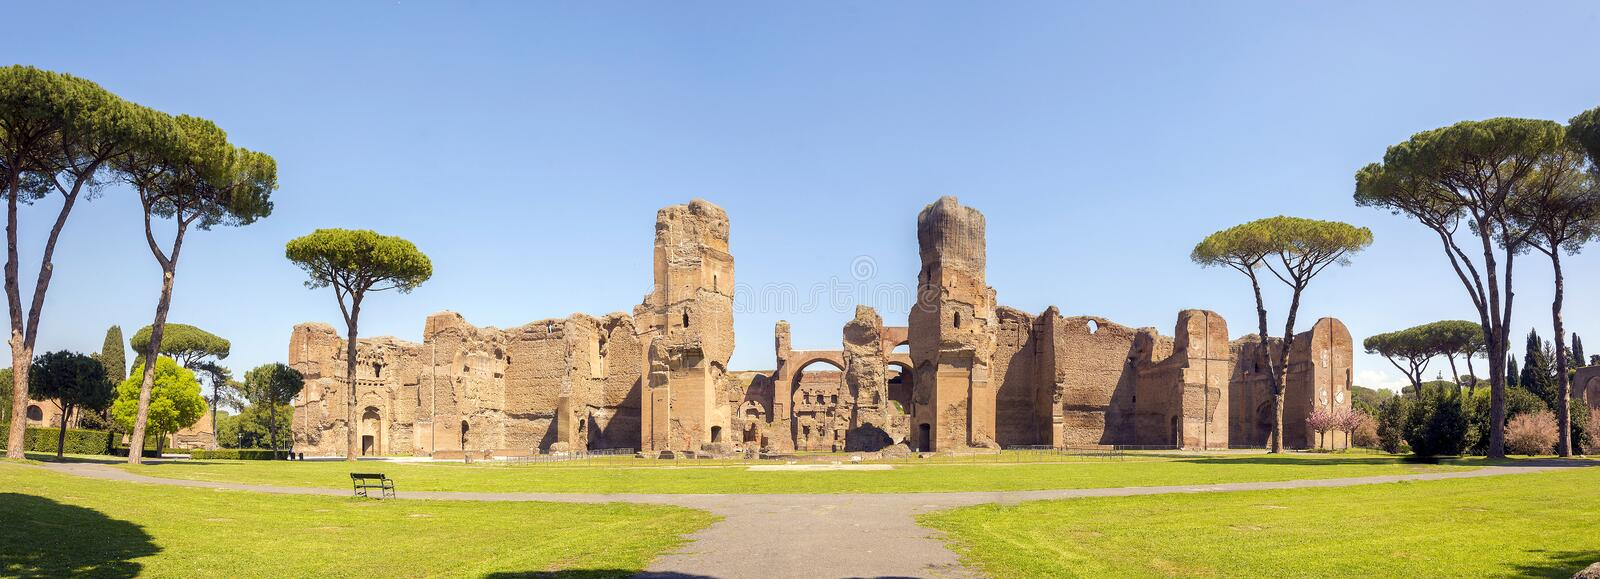 Baths of Caracalla, ancient ruins of roman public thermae. Built by Emperor Caracalla in Rome, Italy stock image